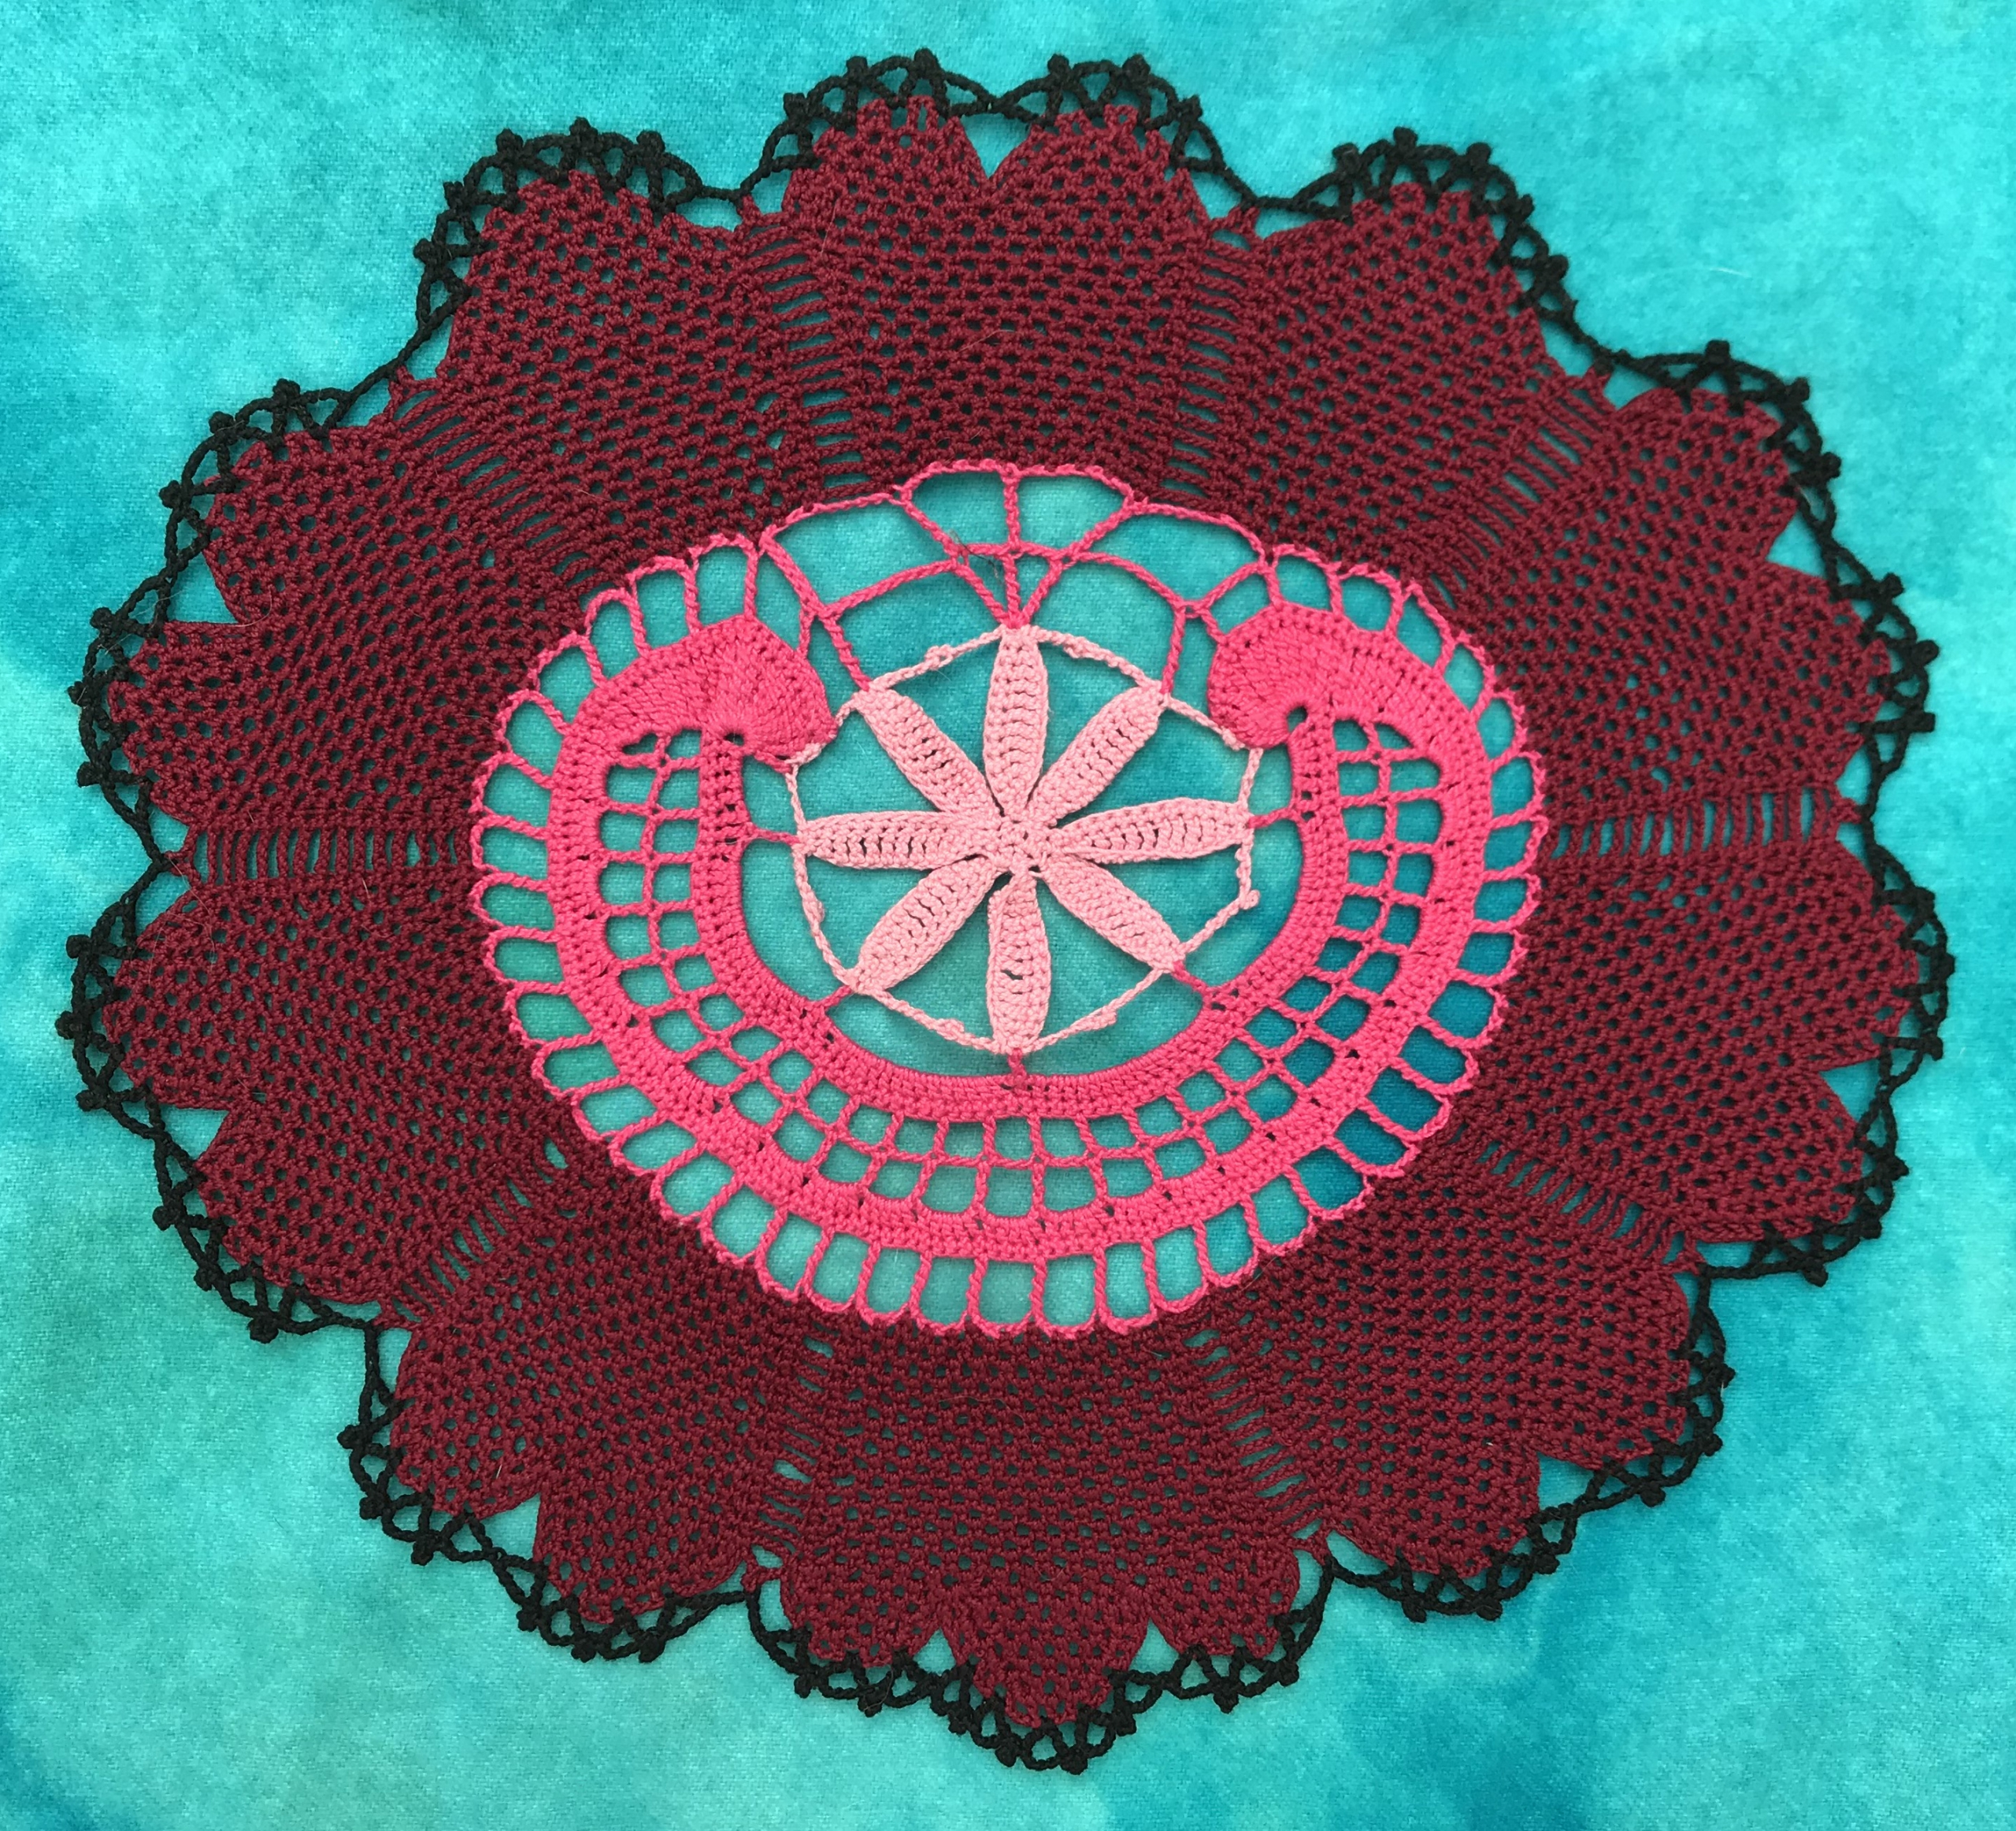 Image of the American Beauty Rose crocheted doily, in red and pink cotton on a teal background